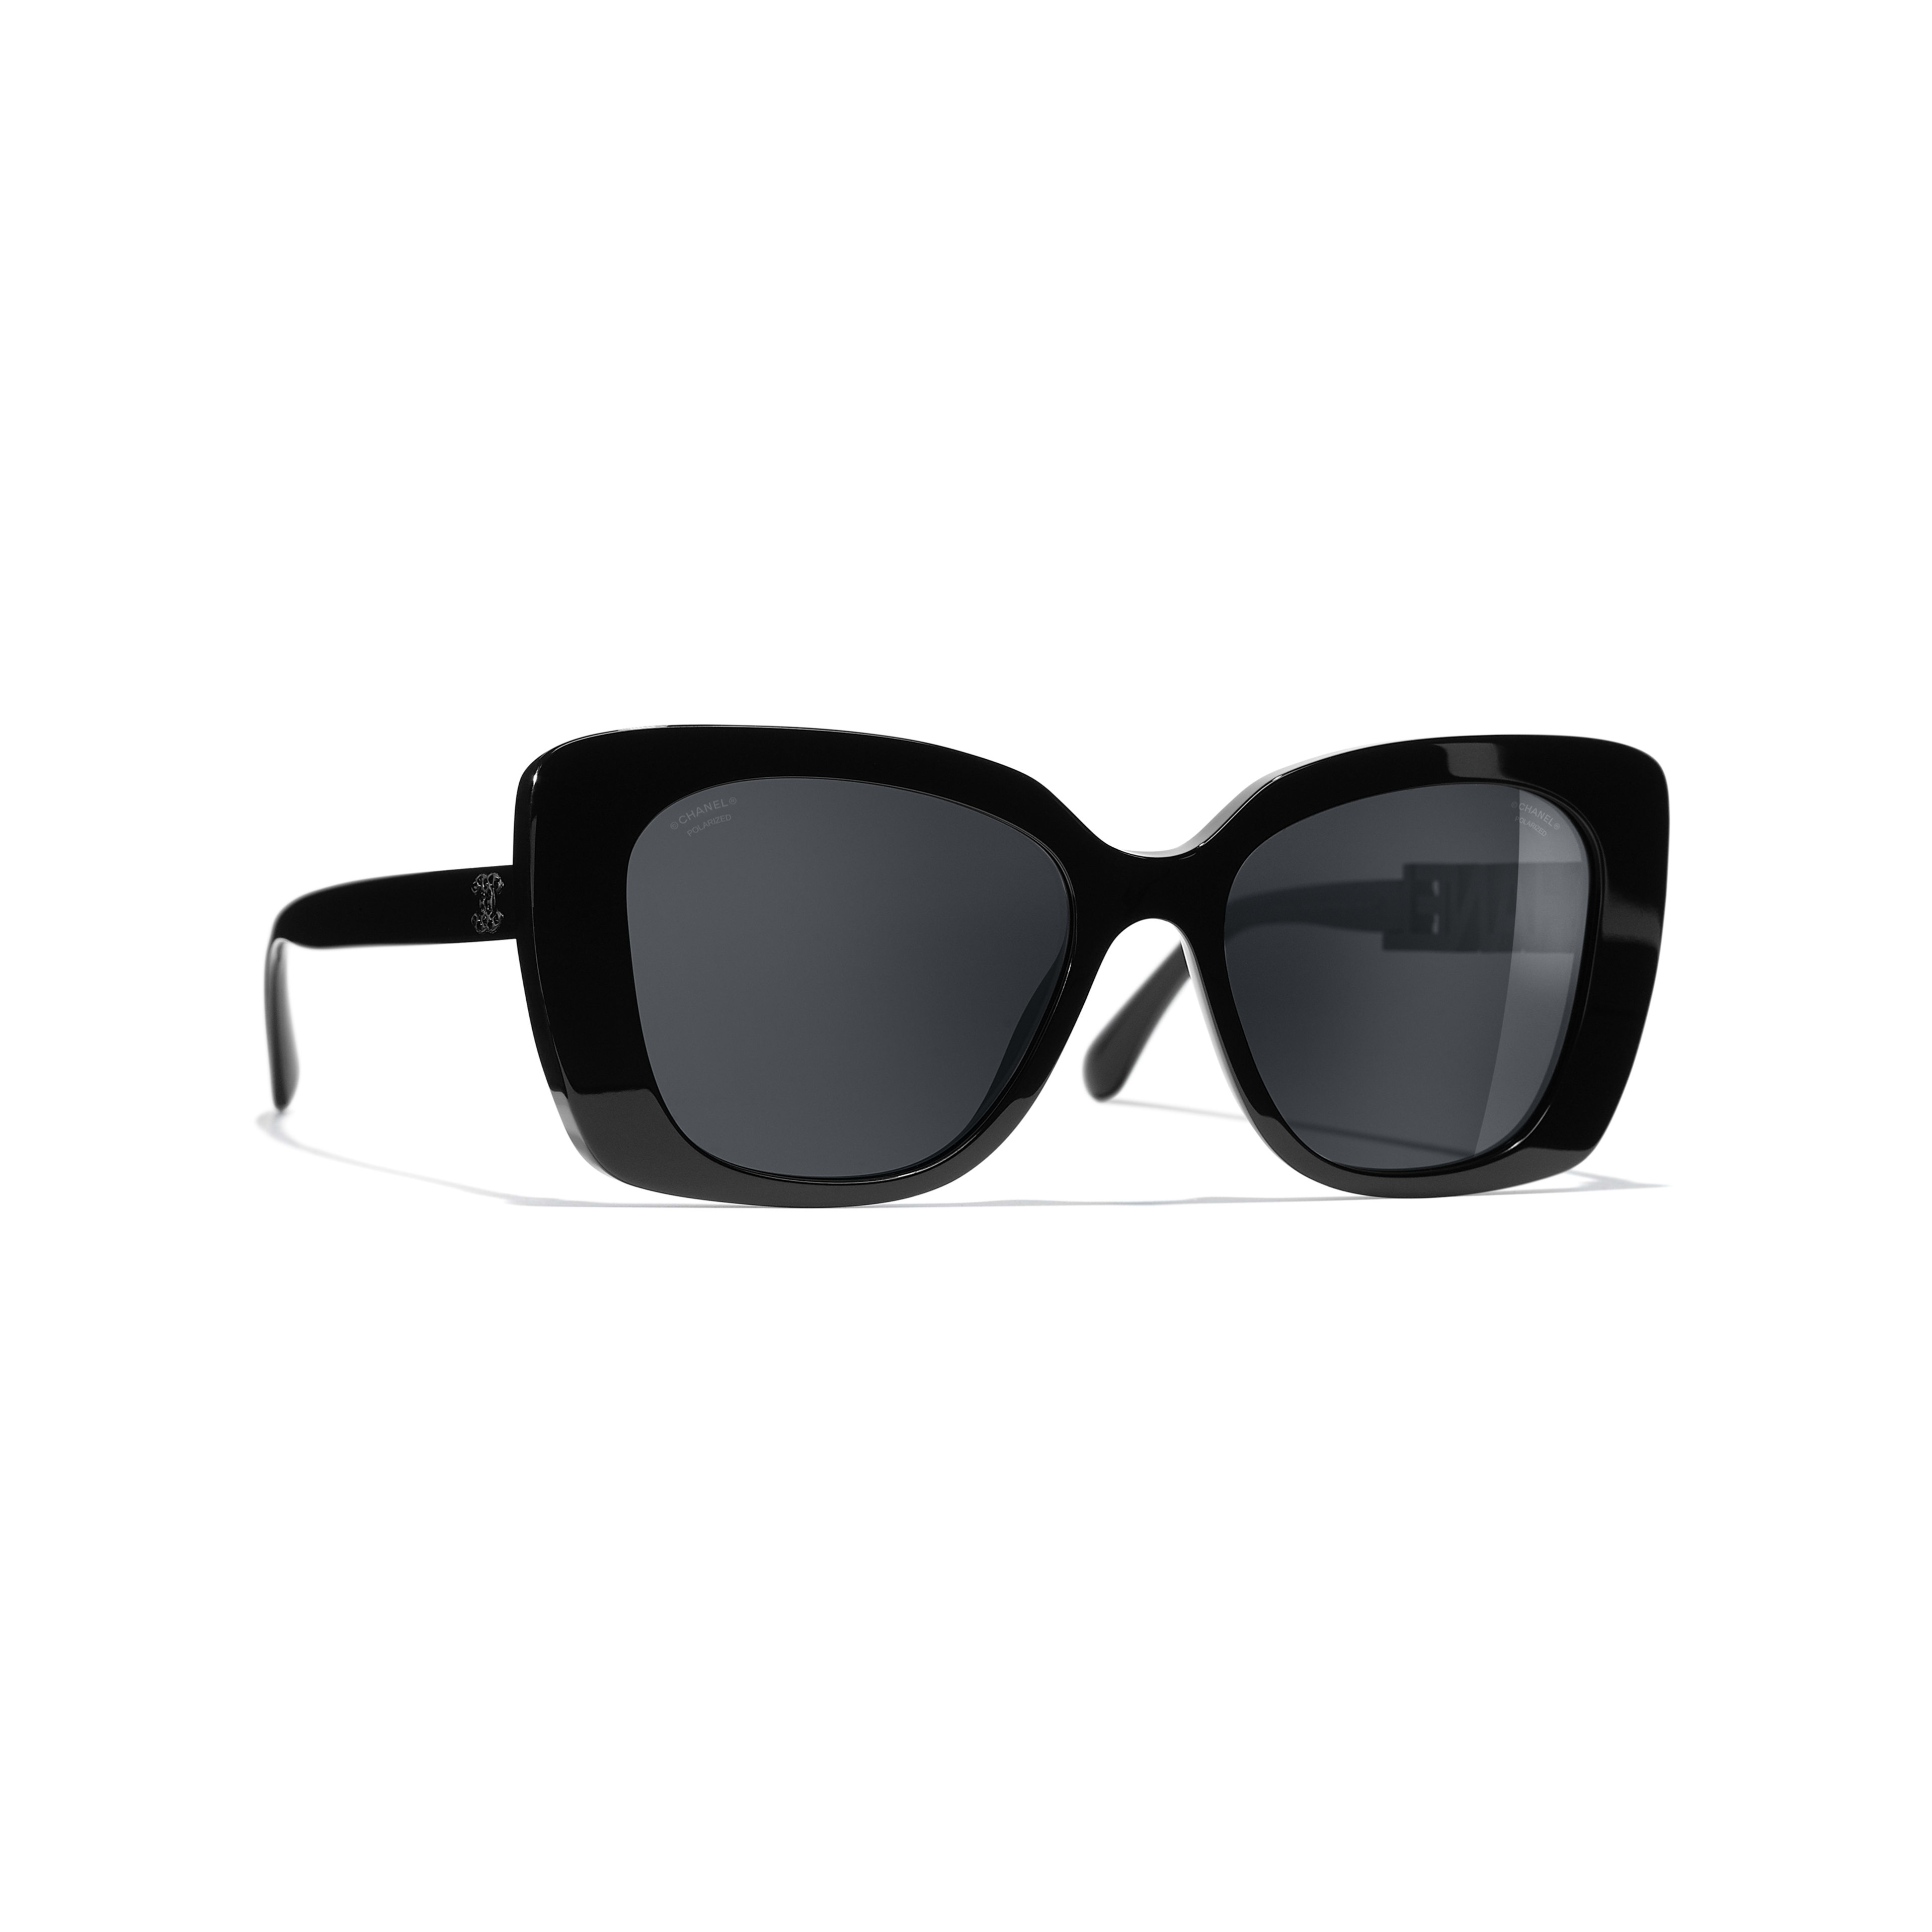 Square Sunglasses - Black - Acetate & Diamanté - CHANEL - Default view - see standard sized version